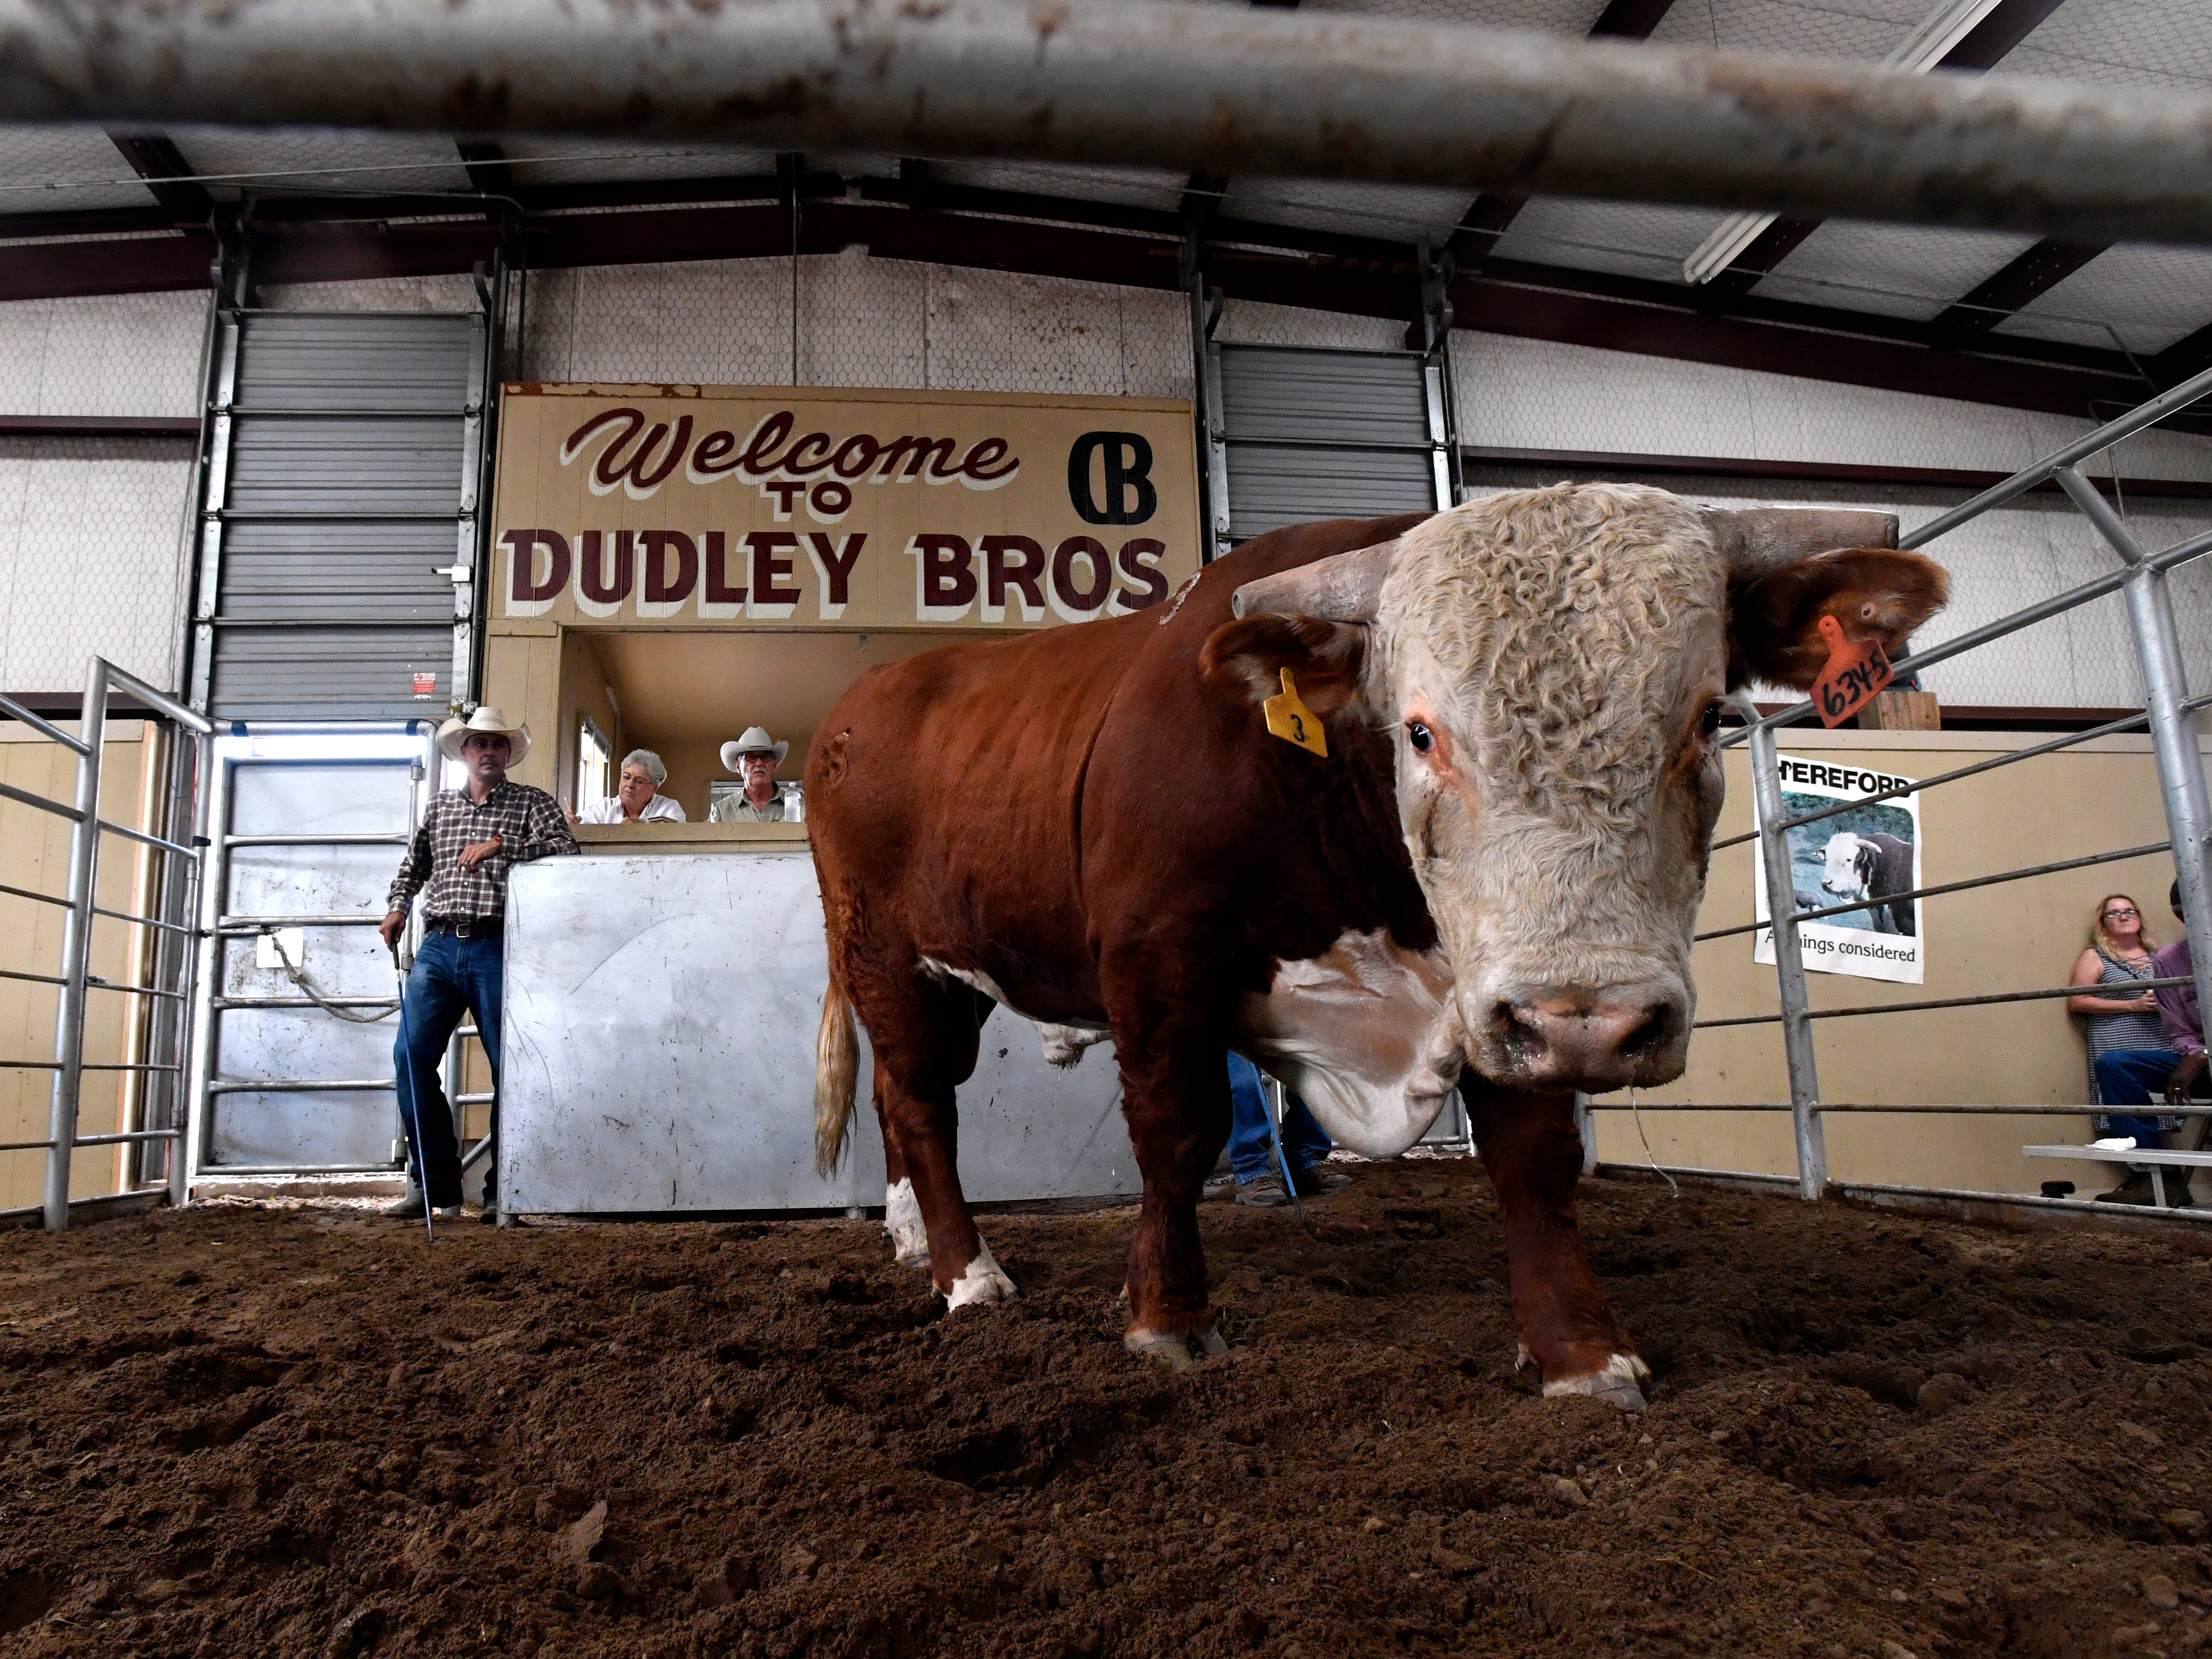 A two-year-old Hereford bull walks in the sale pit at the Dudley Bros. 57th annual Bull Sale Thursday Oct. 4, 2018 in Comanche. There were 137 bulls sold to bidders in-person and over the internet.